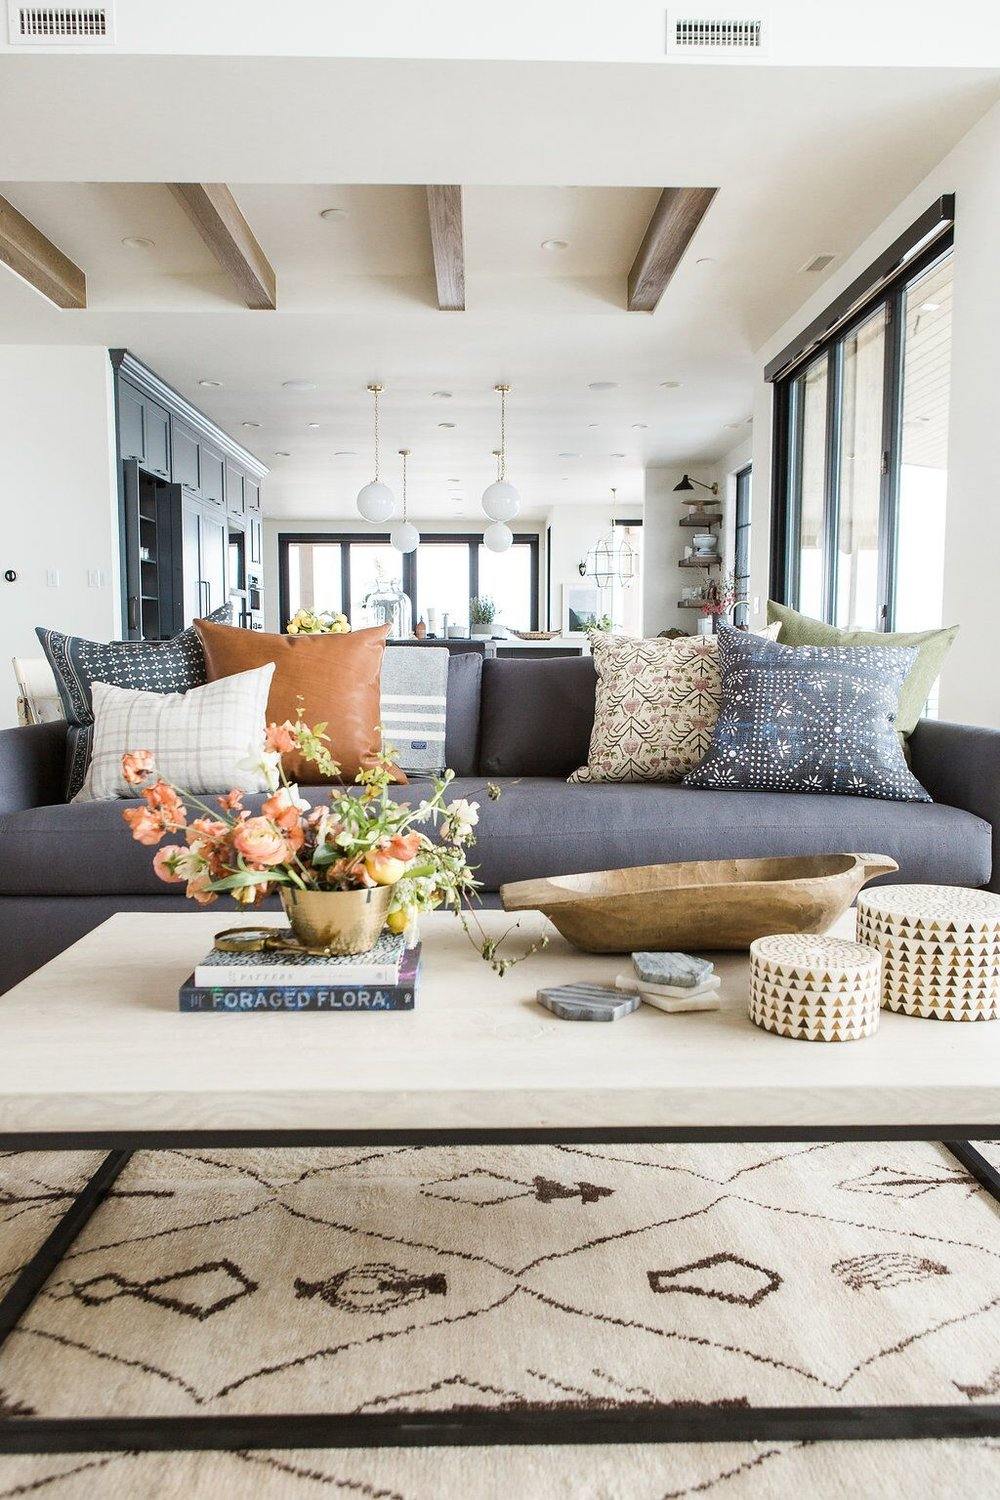 How To Style Your Throw Pillows Studio Mcgee